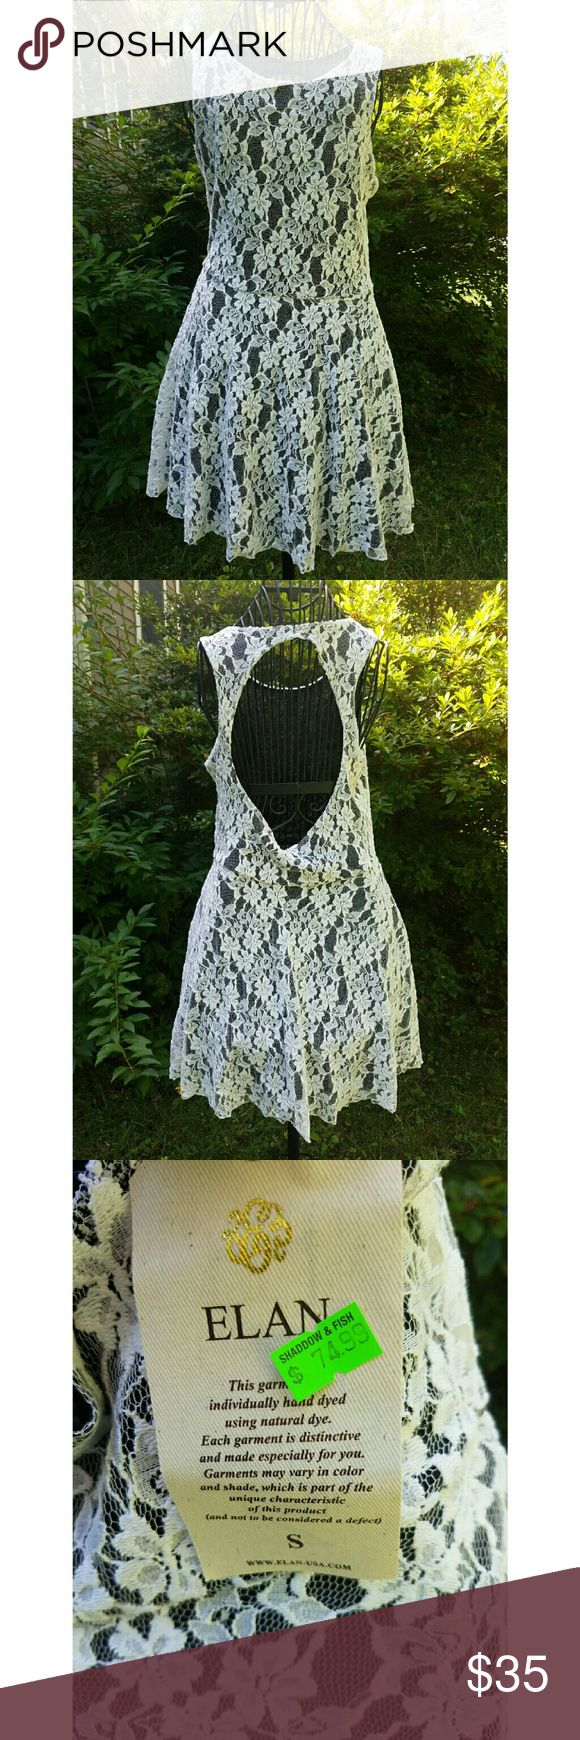 NWT Elan White Lace Black Lining Sleeveless Dress Sexy meets innocent in this new with tags NWT Elan White Lace Black Lining Sleeveless Dress  Womens Small Retail price $75  Made in USA  Exposed Back  White lace shell with black rayon full lining  Slips over head with exposed back Elan Dresses Mini